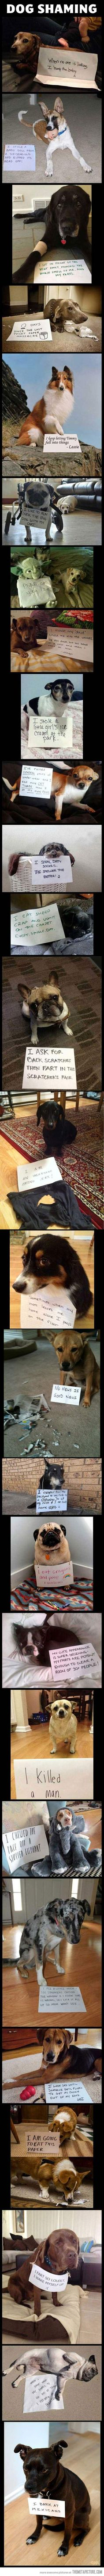 The ultimate dog shaming compilation…FLIPPIN HILARIOUS!! But you can't read them because the writing is so little ;-(